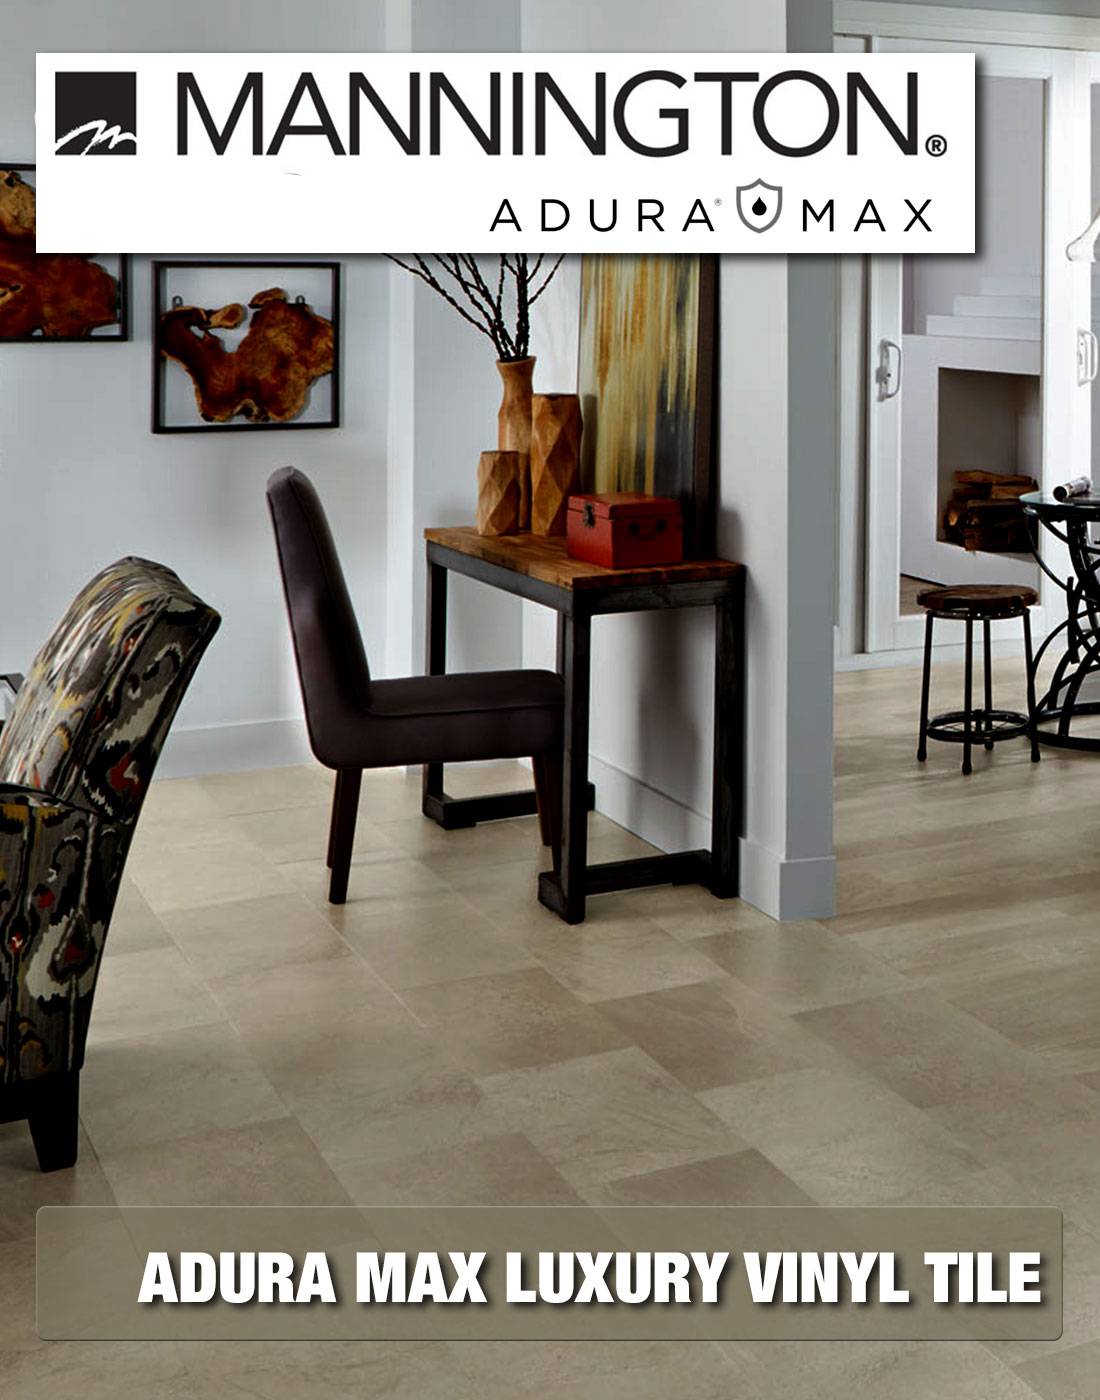 Mannington Adura Max Luxury Vinyl Tile